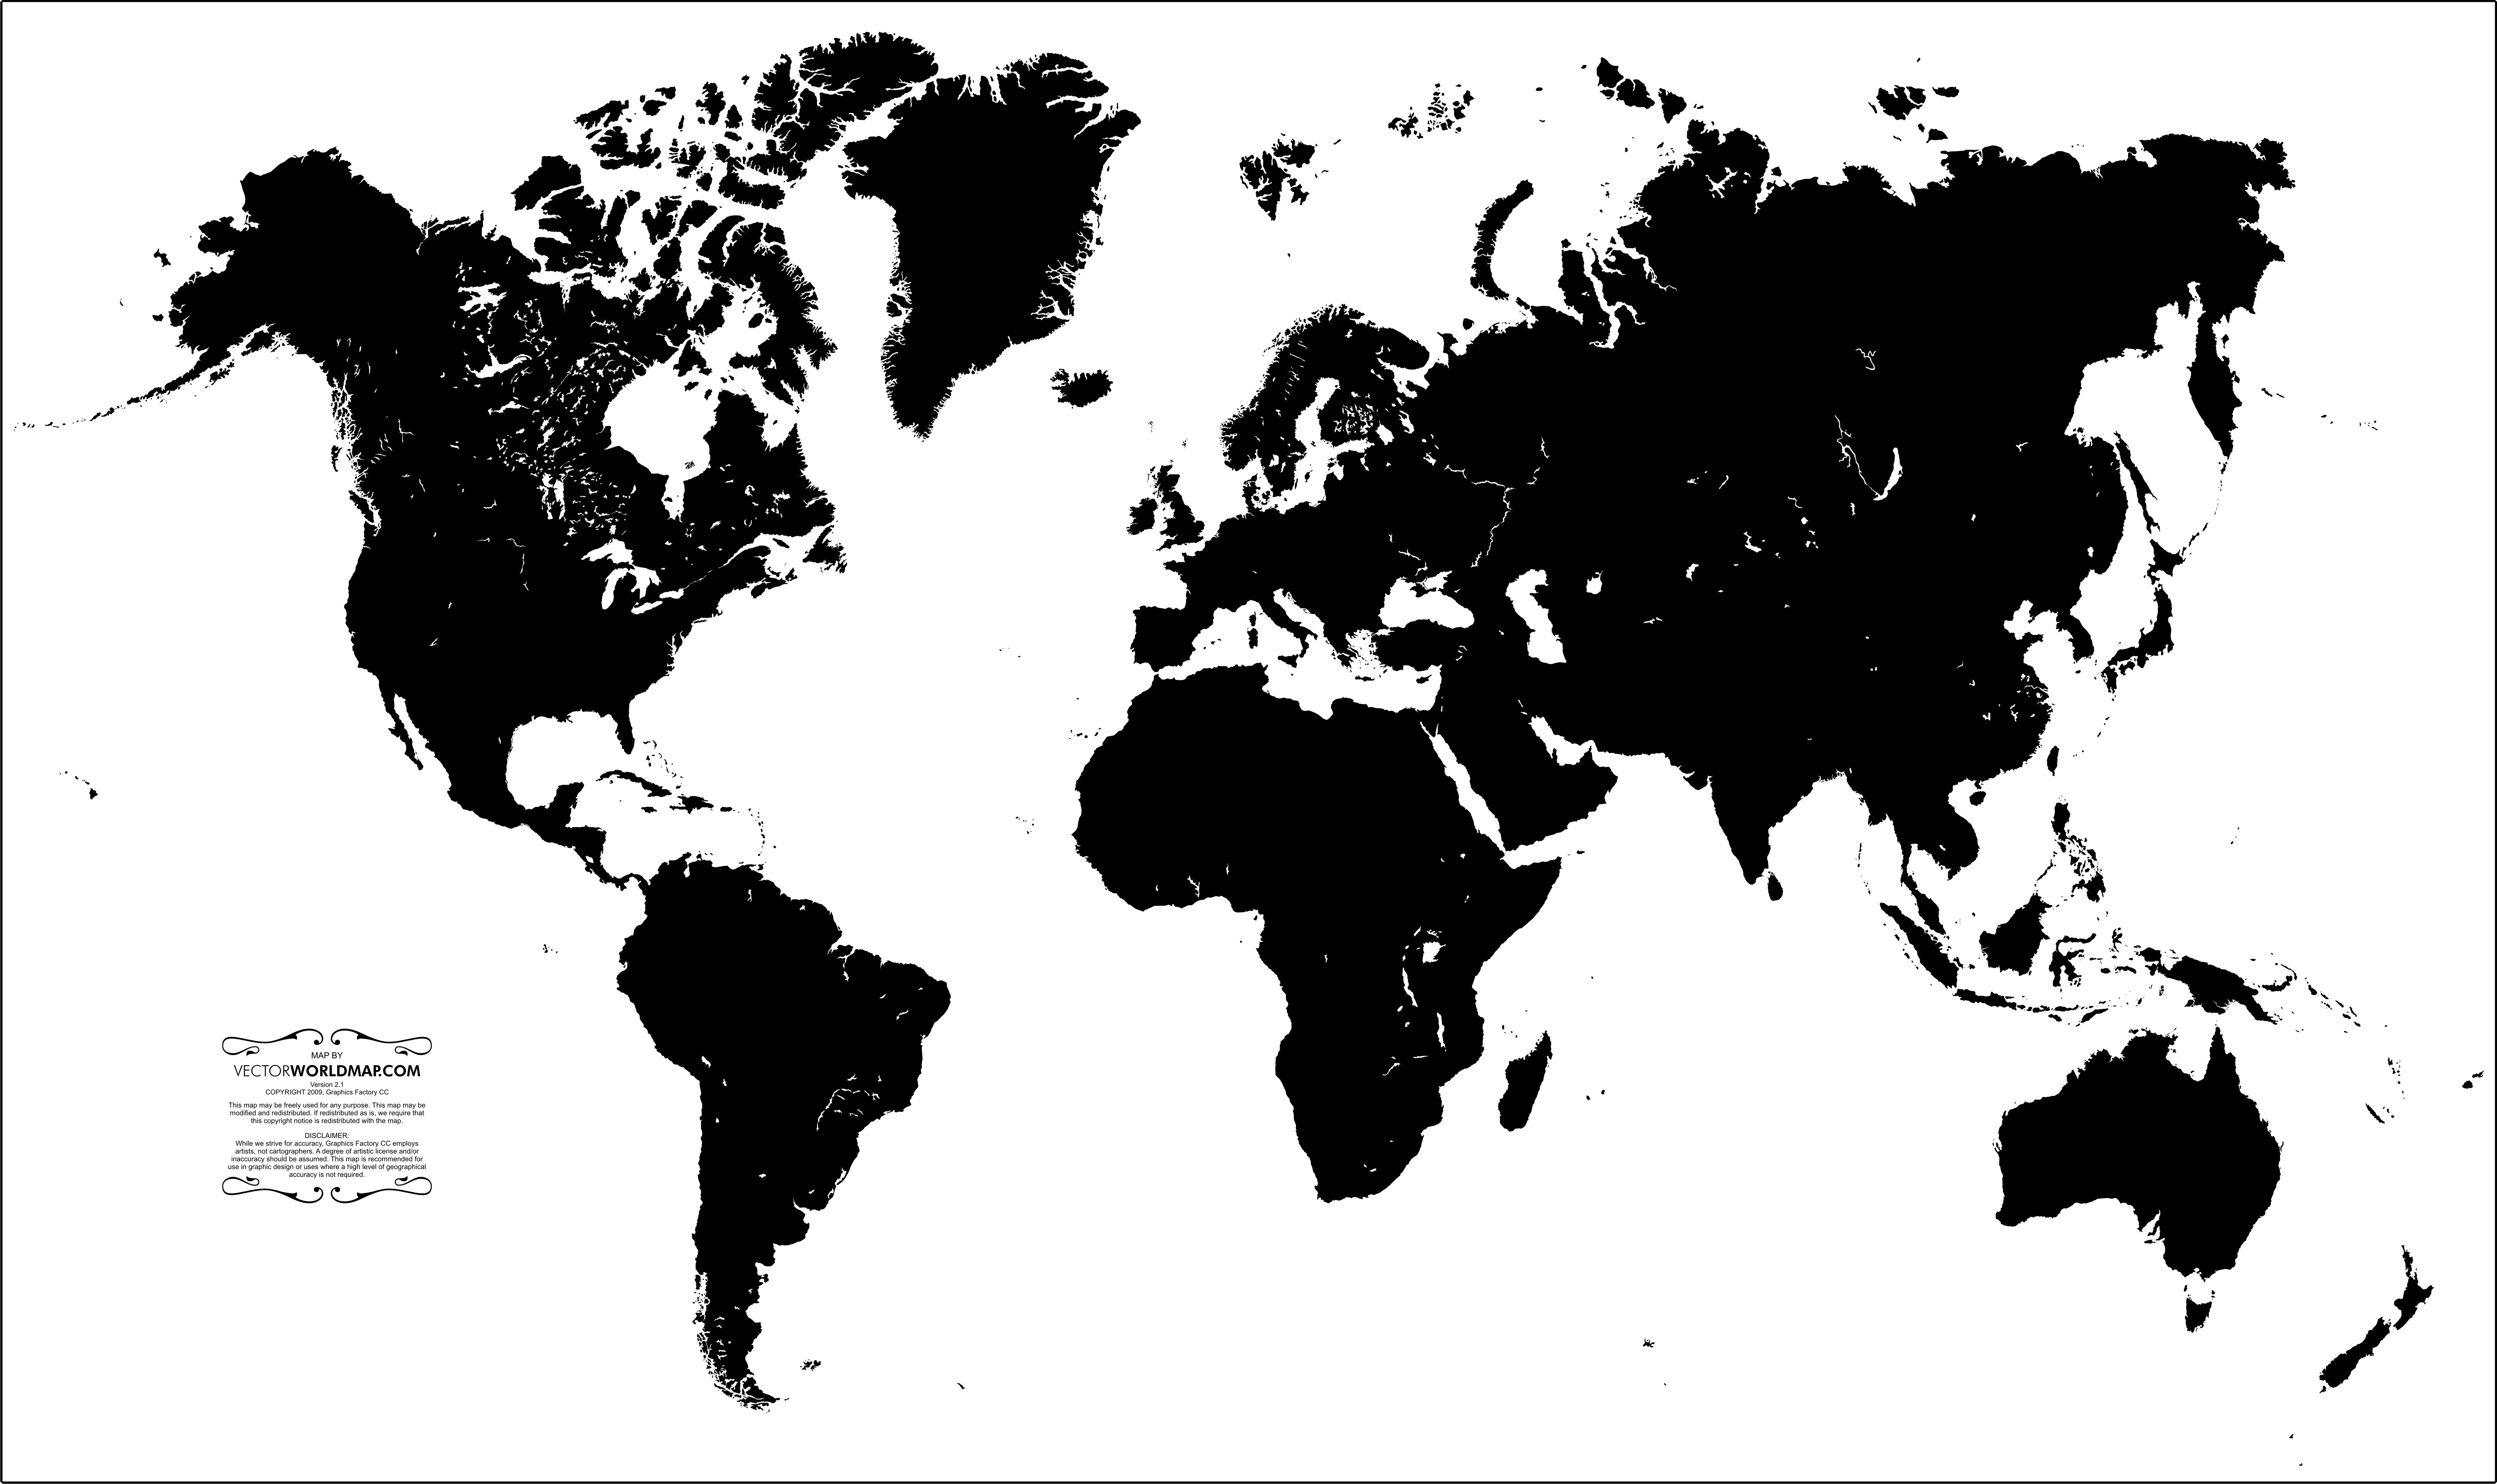 World map clipart uship png royalty free library World map clipart uship - ClipartFest png royalty free library